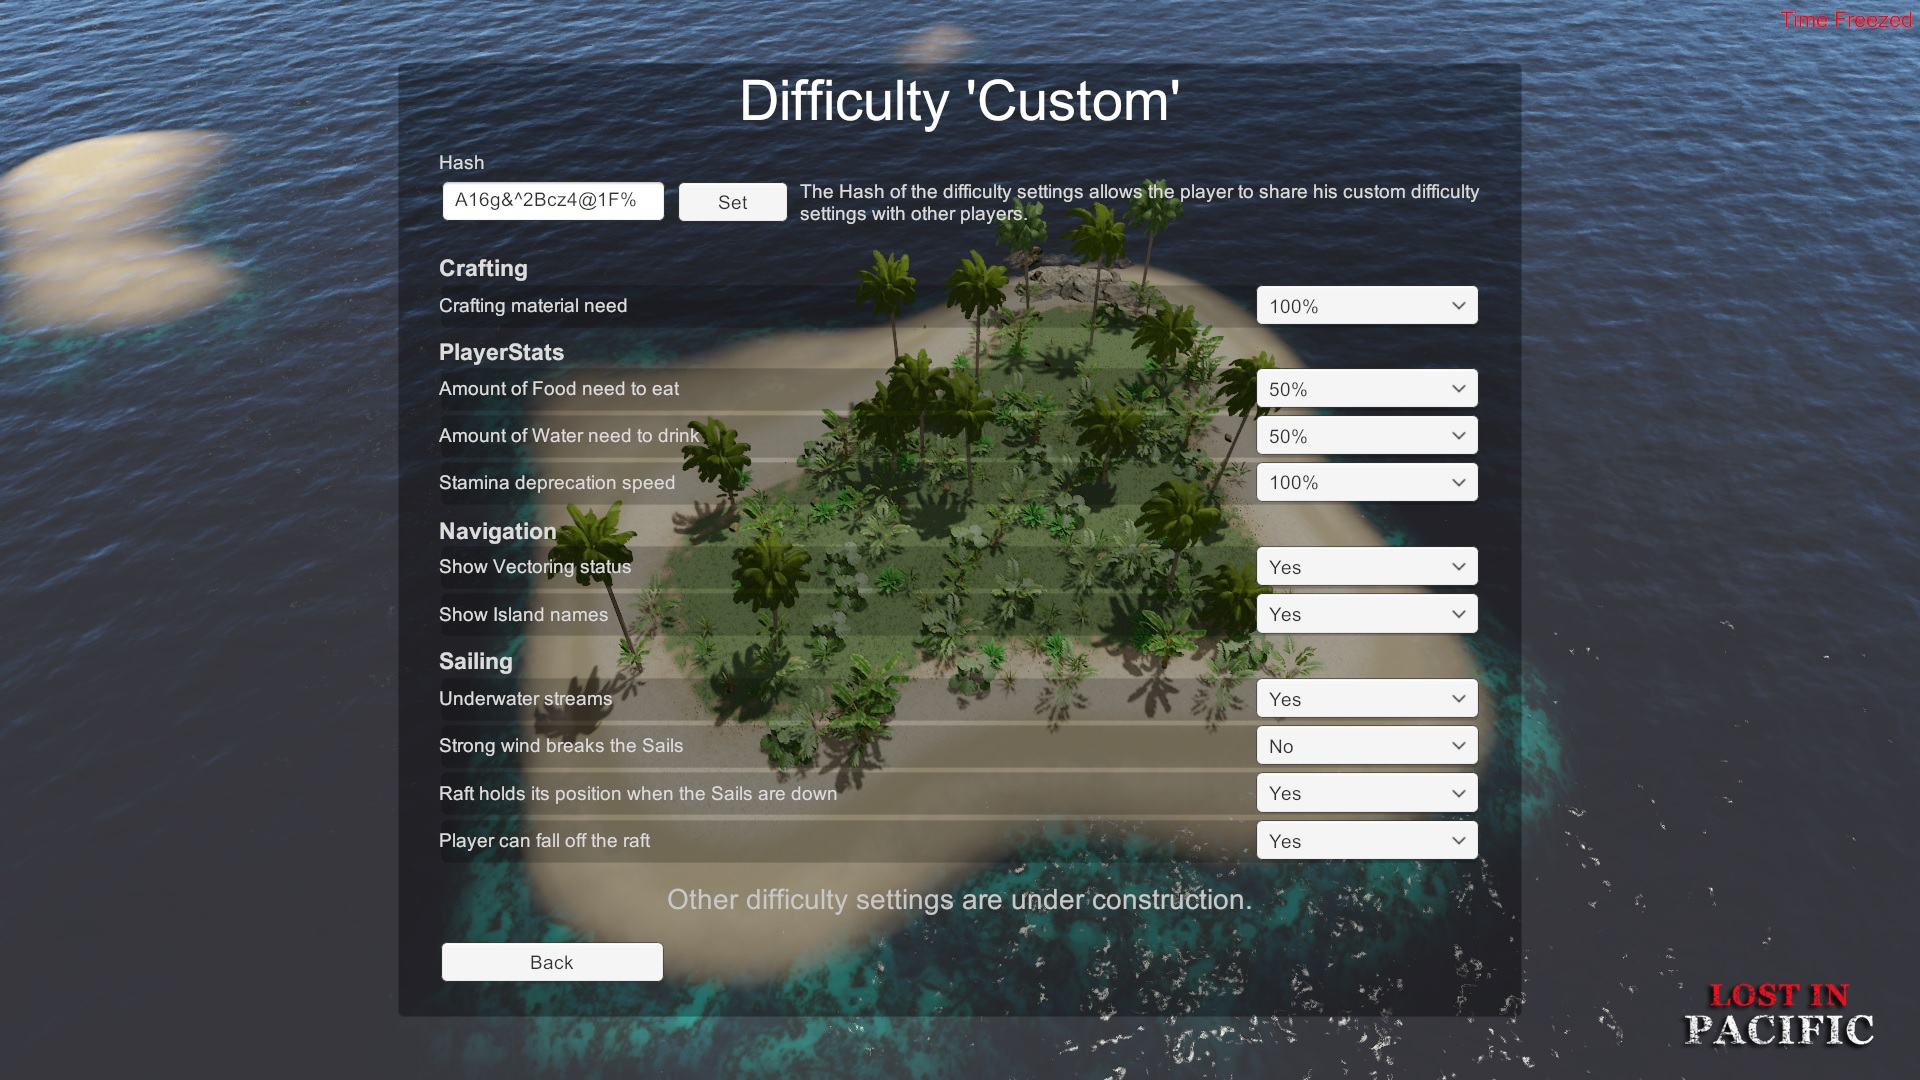 LiP_Custom_Difficulty